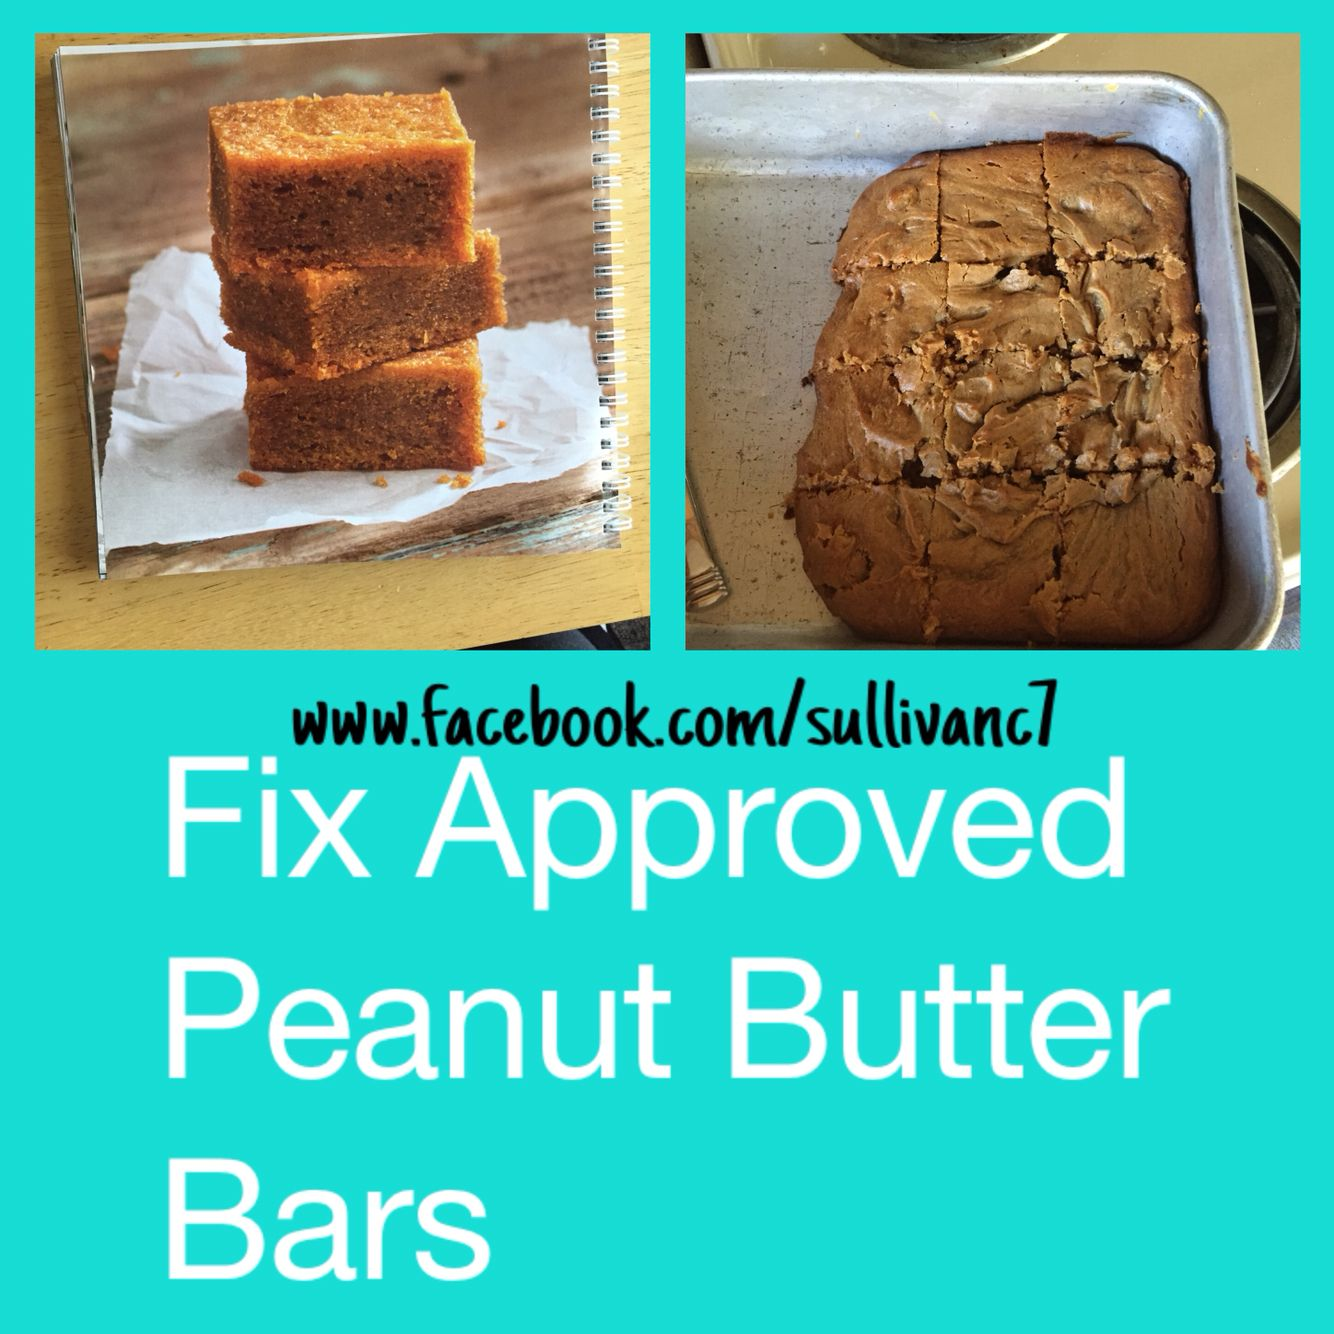 Who doesn't love peanut butter bars! Yummy and fix approved! #fixate #fixapproved #21dayfix